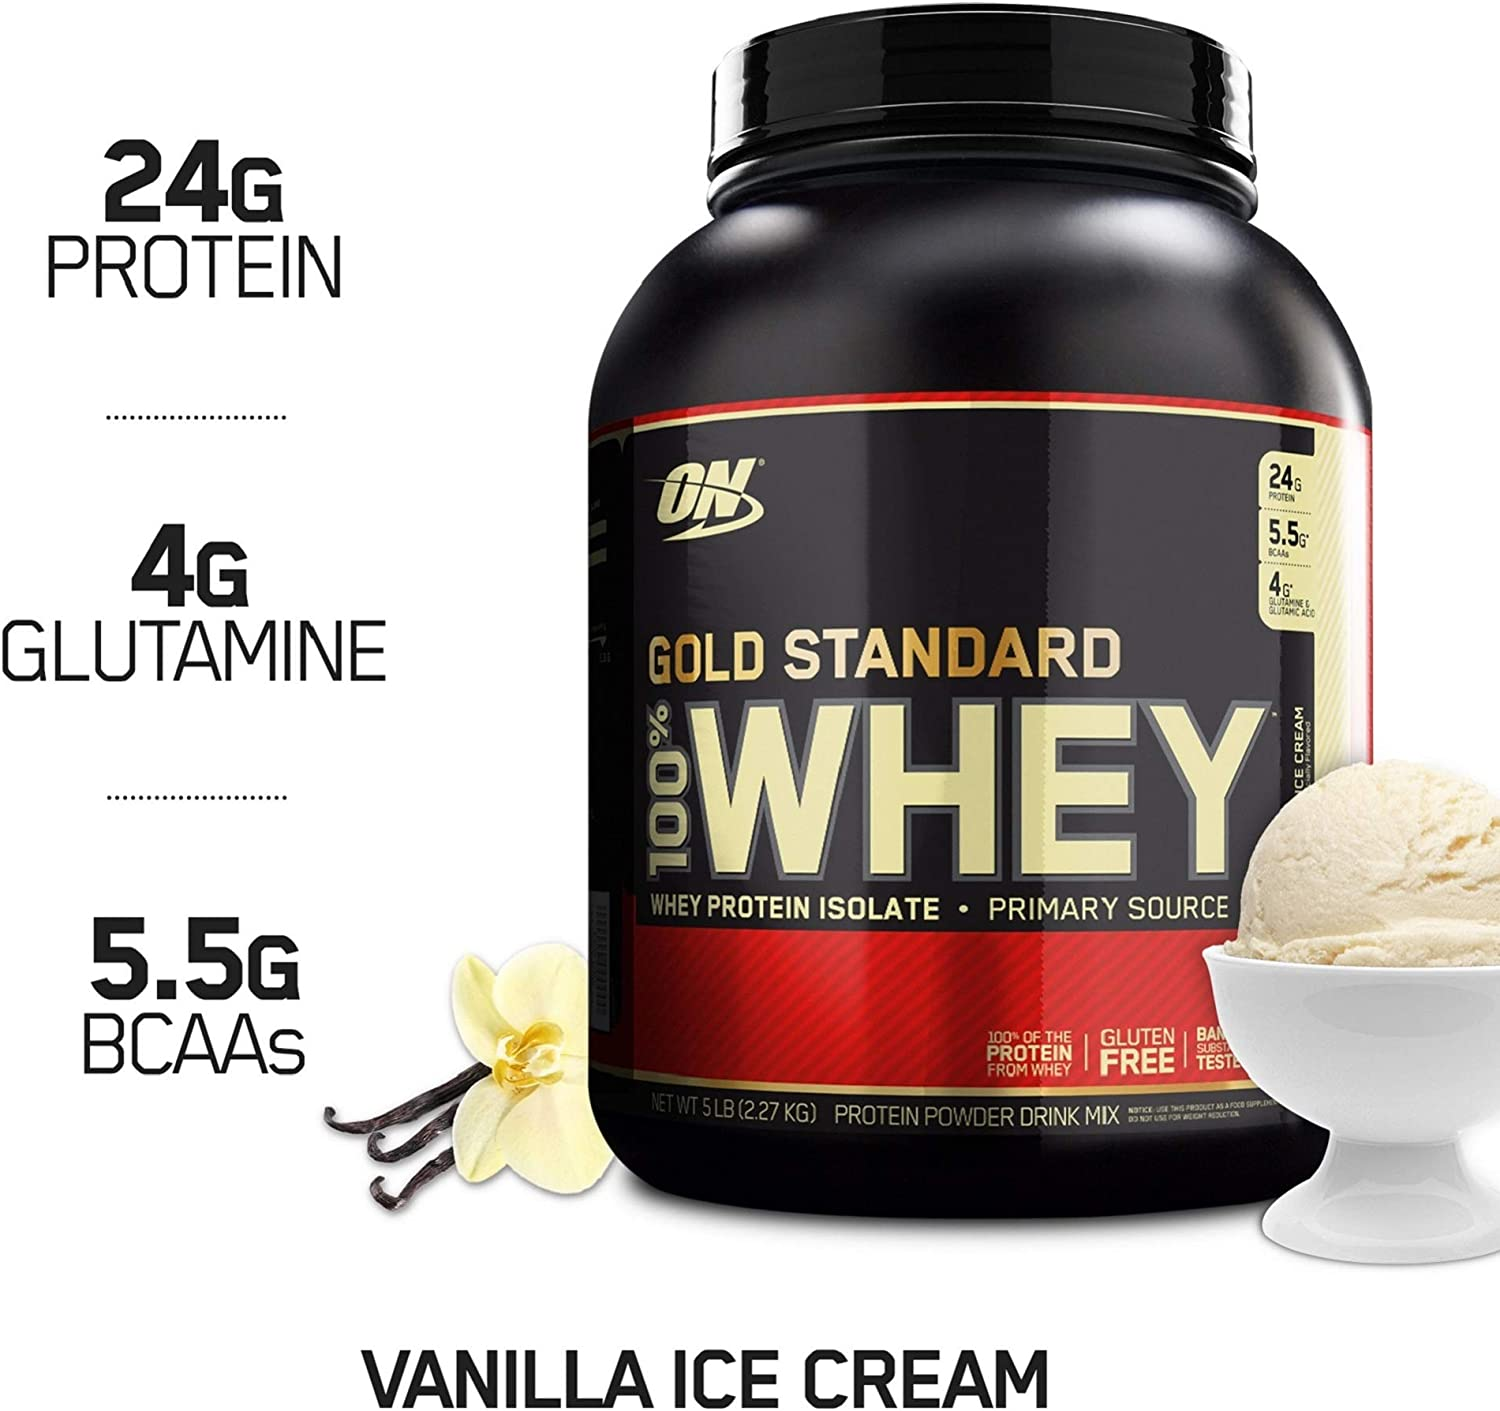 OPTIMUM NUTRITION GOLD STANDARD 100 Whey Protein Powder, Vanilla Ice Cream, 5 Pound